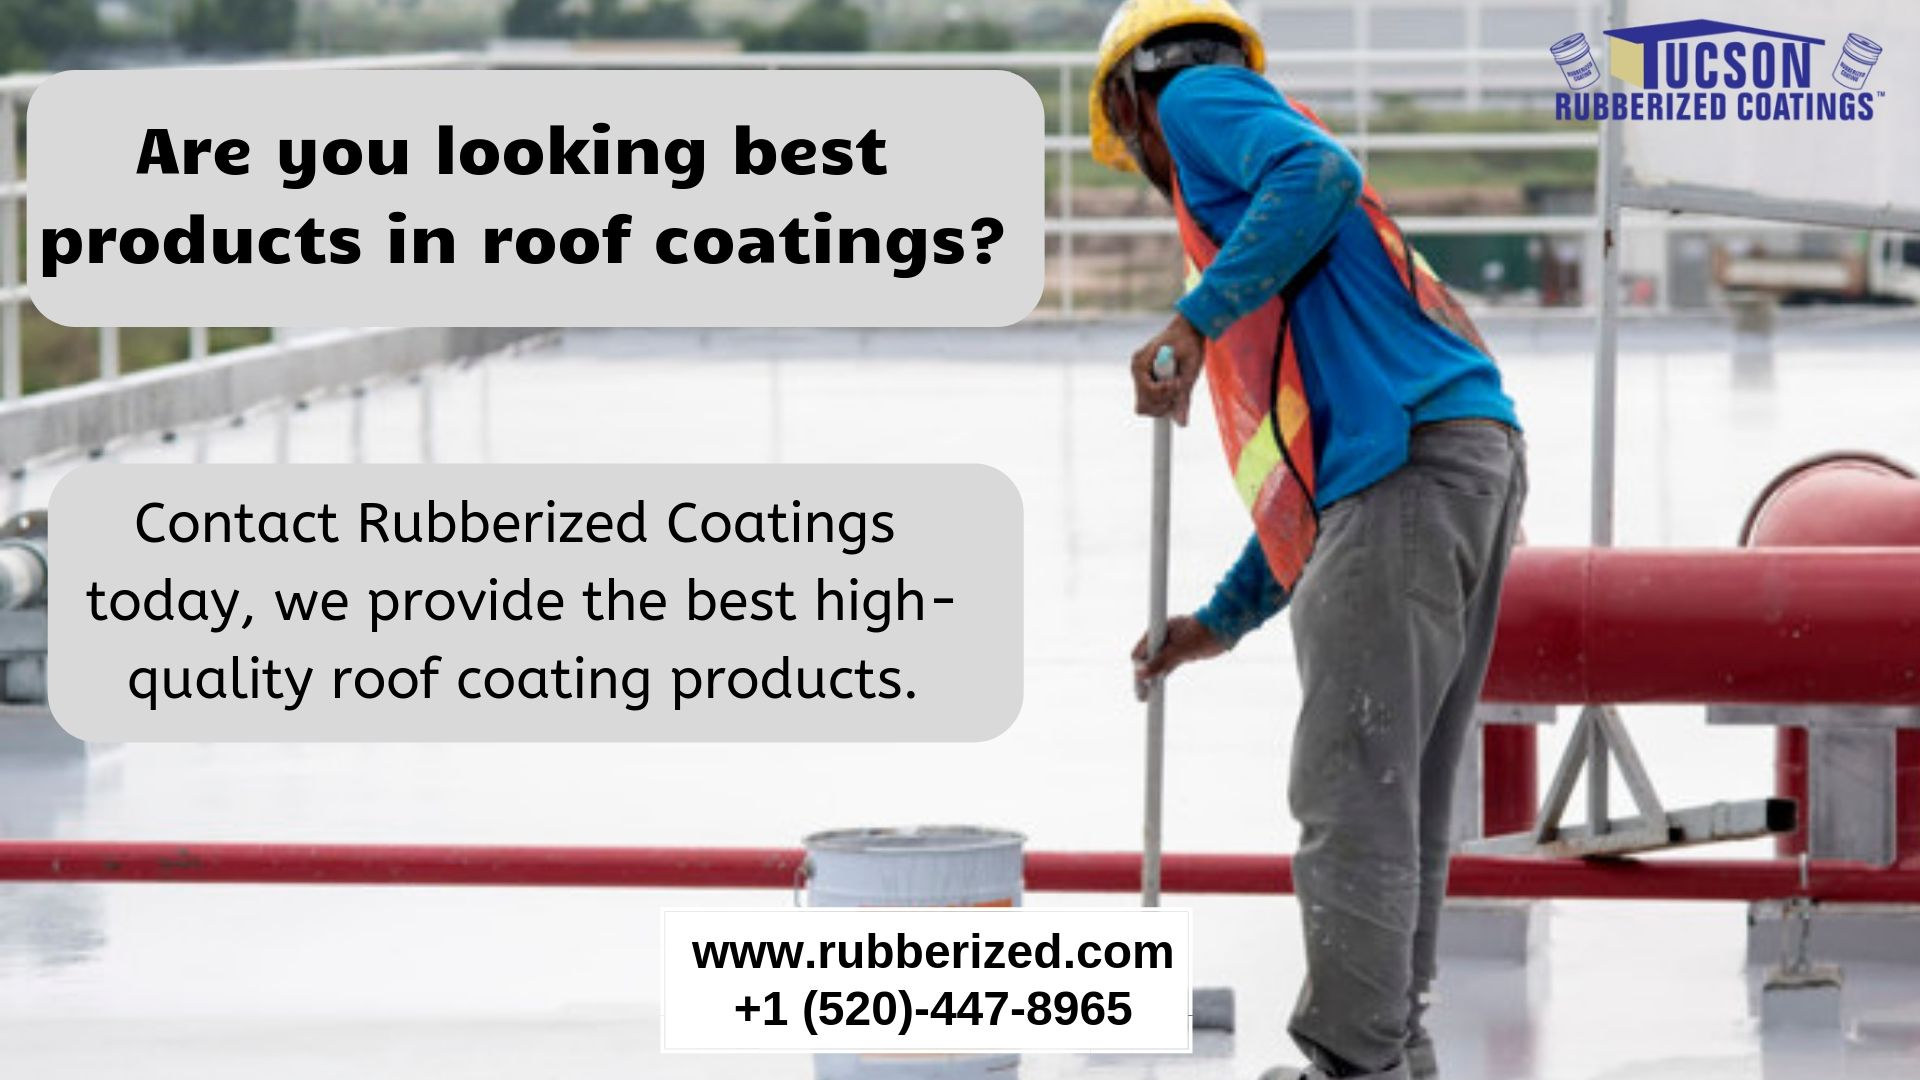 Are You Looking Best Products In Roof Coatings Roof Coatings Roof Coating Roof